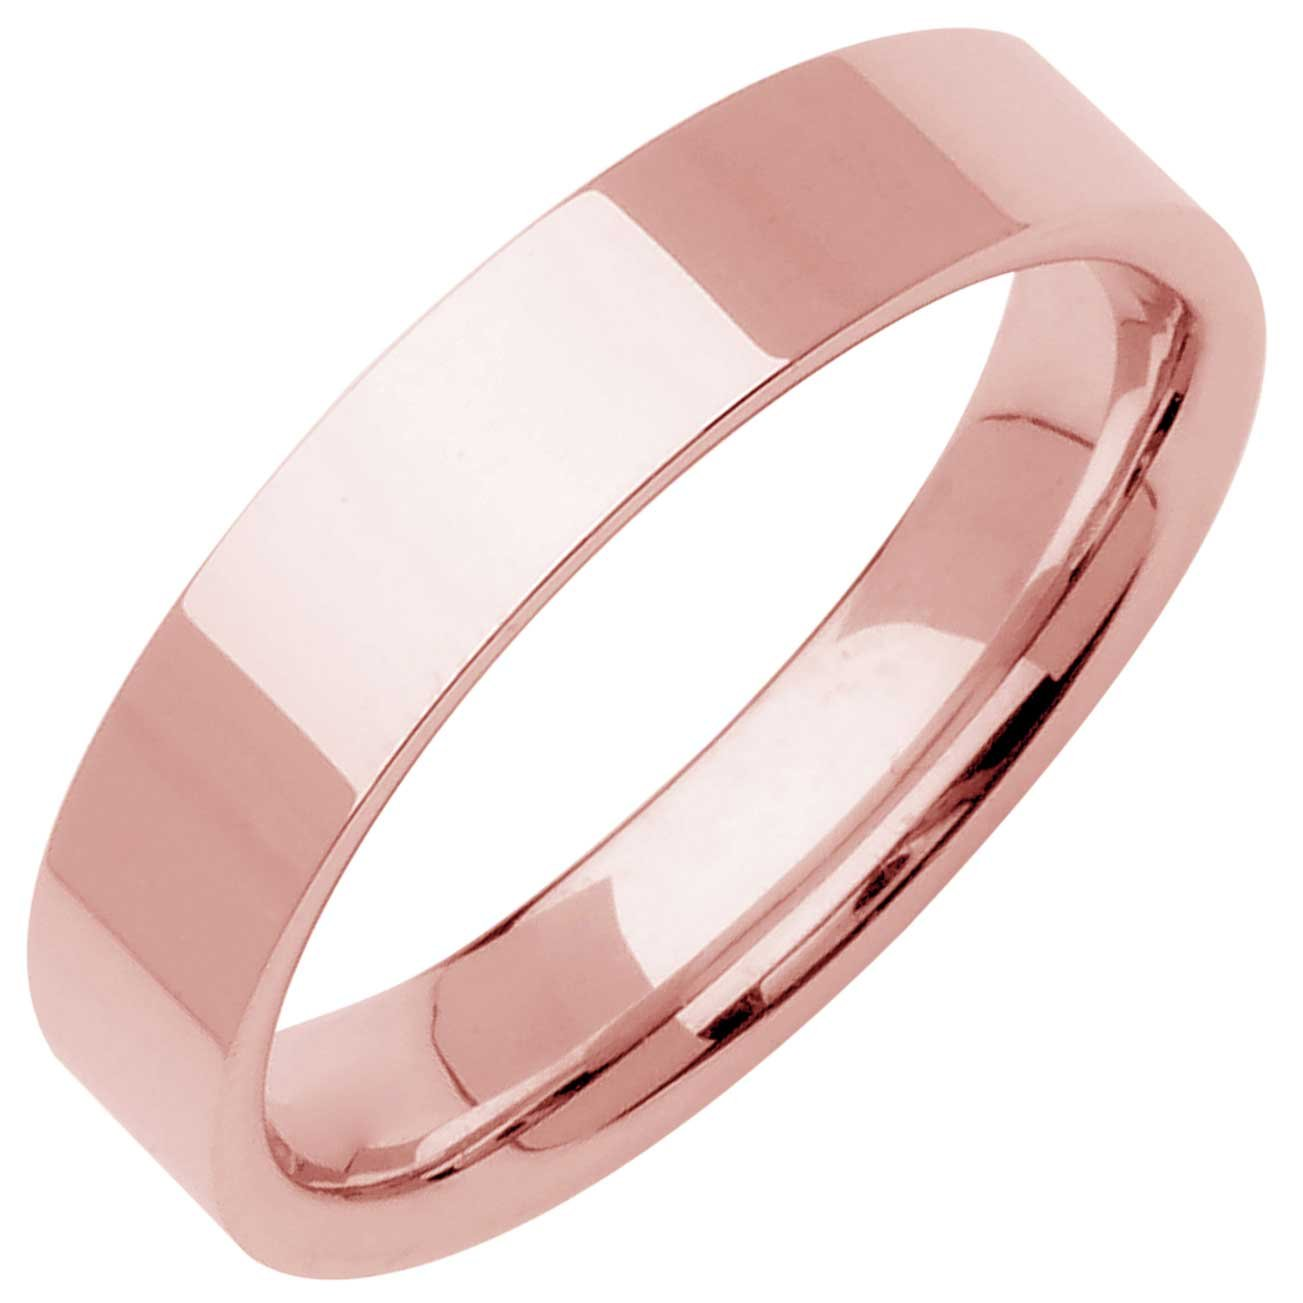 18K Rose Gold Traditional Top Flat Men's Comfort Fit Wedding Band (6mm) Size-11c1 by Wedding Rings Depot